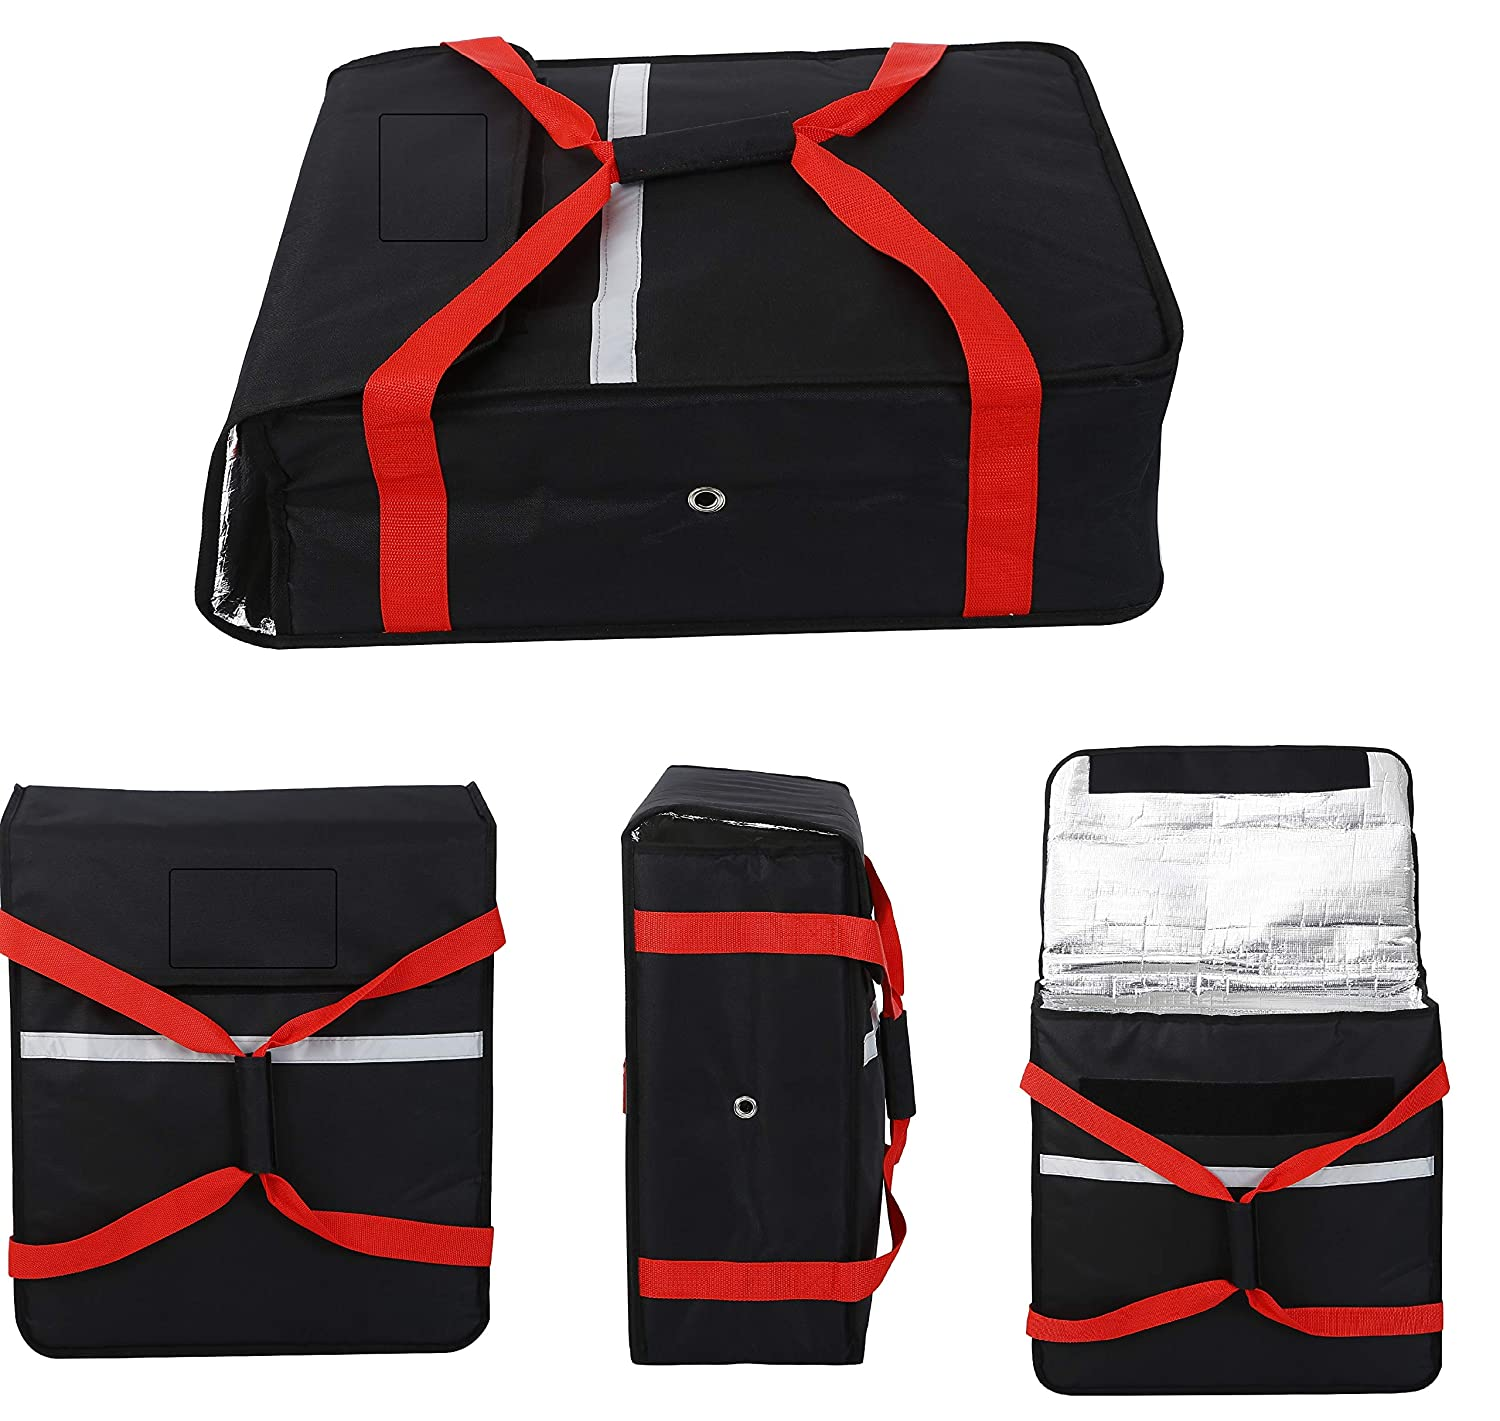 Size 20x 20x 8 Size 52x52x20cm Full Insulated all sides keep it wrm Commercial Heavy Duty Pizza Bags 5 x PIZZA DELIVERY BAG